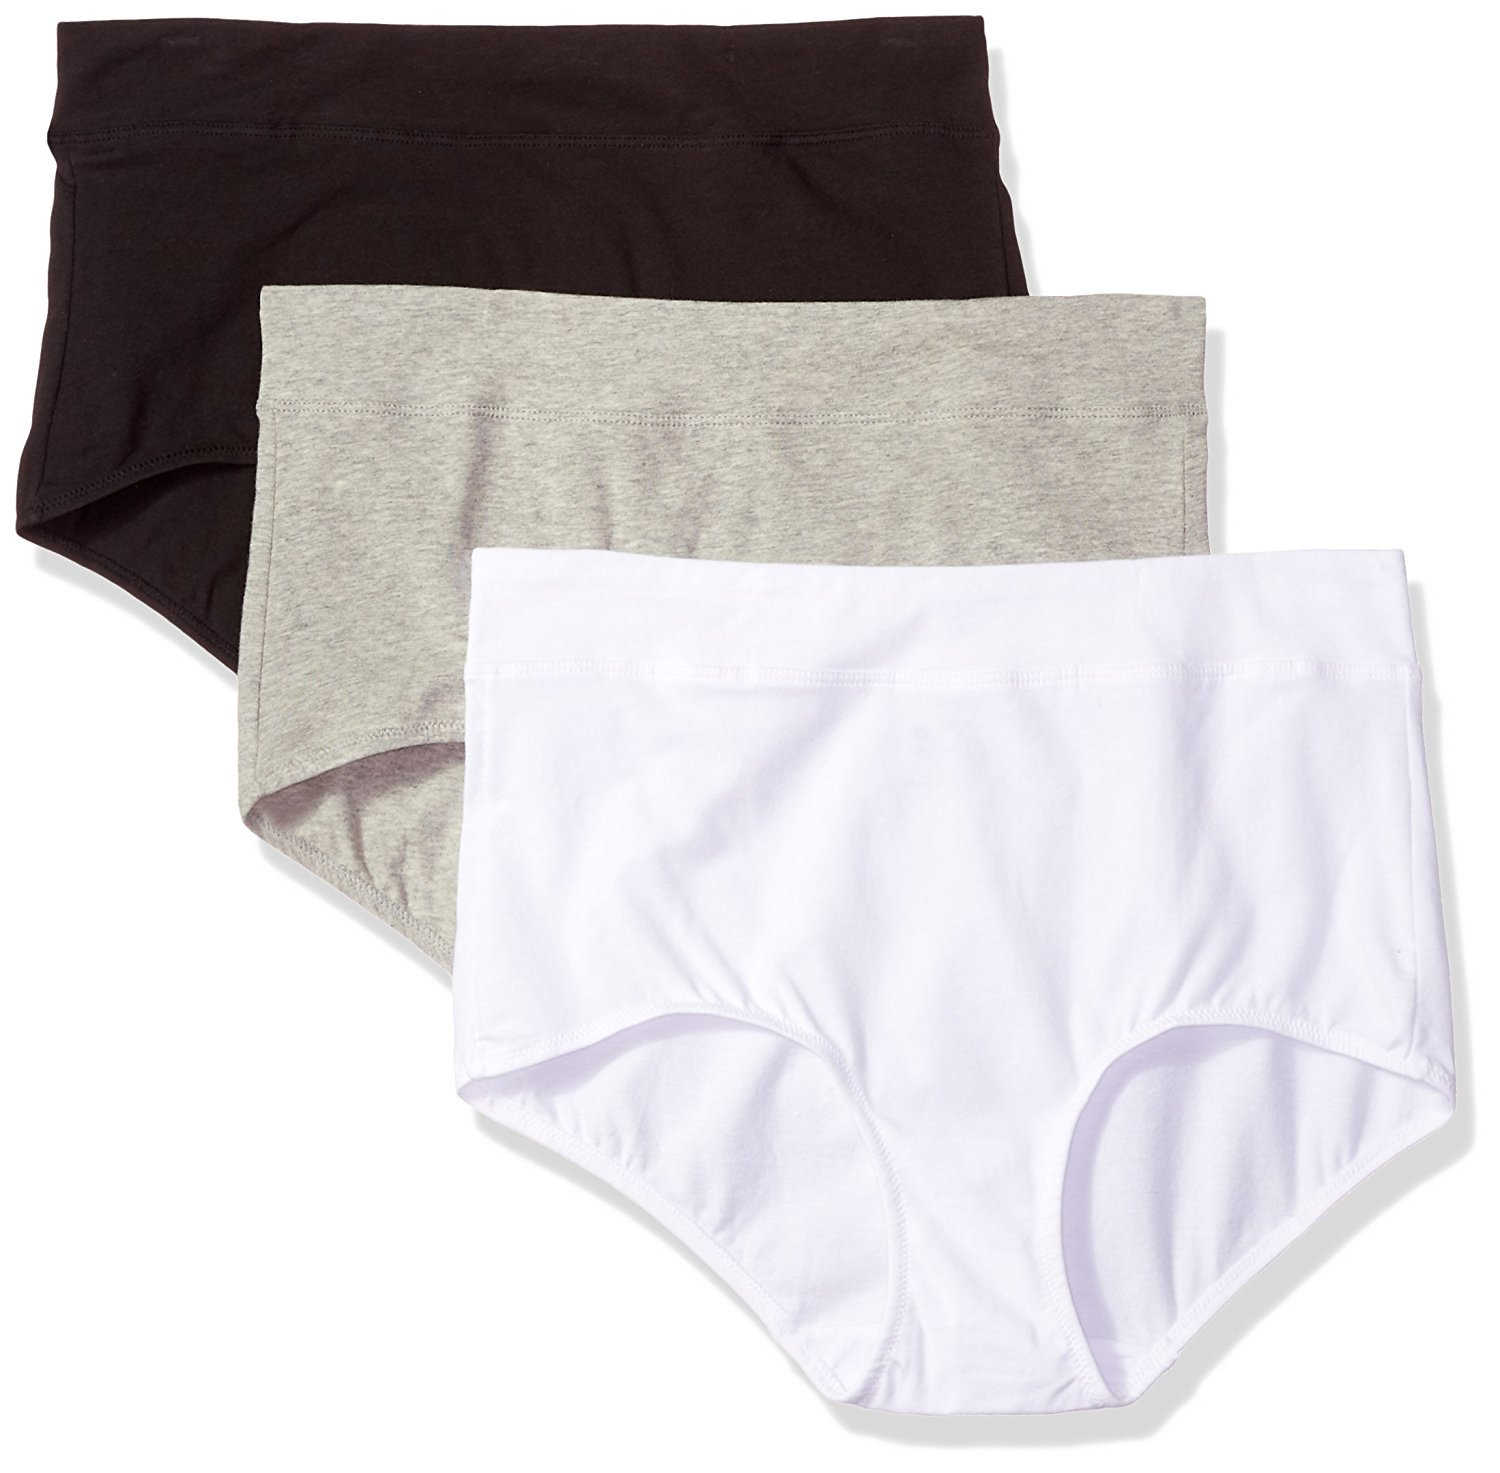 3906a985701a 81kbxosortl. ul1500. 81kbxosortl. ul1500. Warners Womens Blissful Benefits No  Muffin Top 3 Pack Brief Panty ...